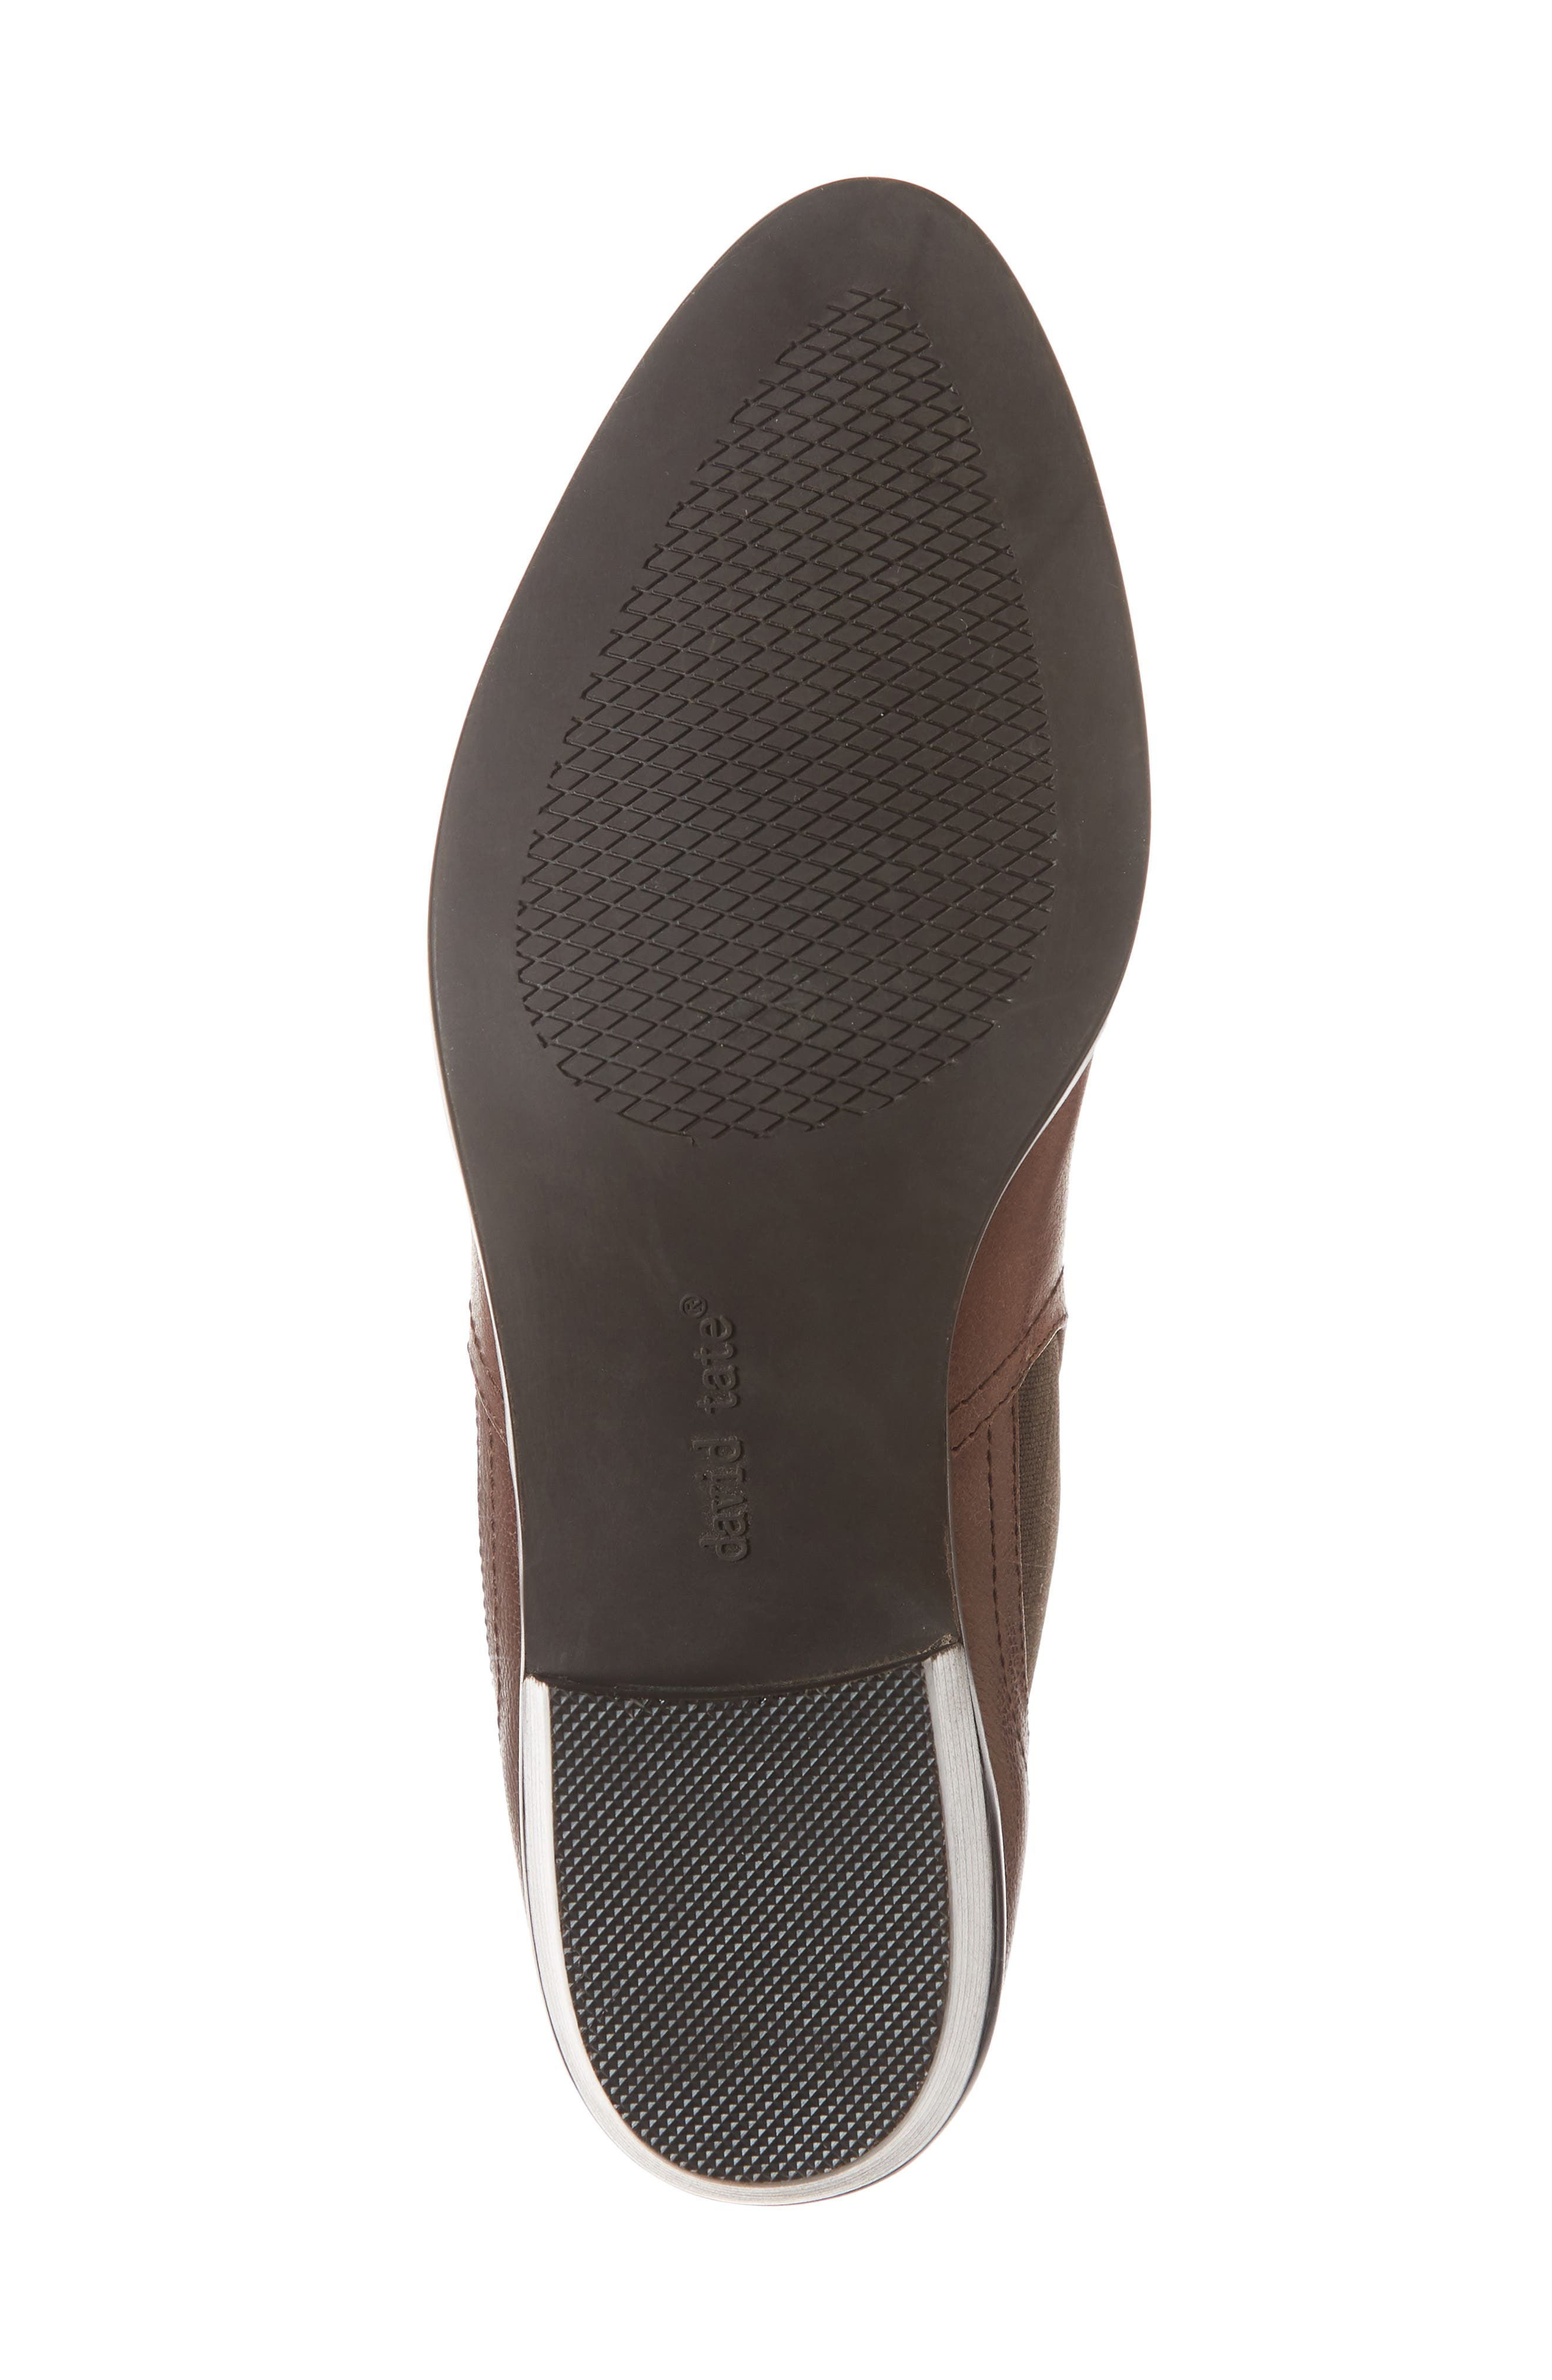 Maxie Chelsea Boot,                             Alternate thumbnail 6, color,                             LUGGAGE LEATHER